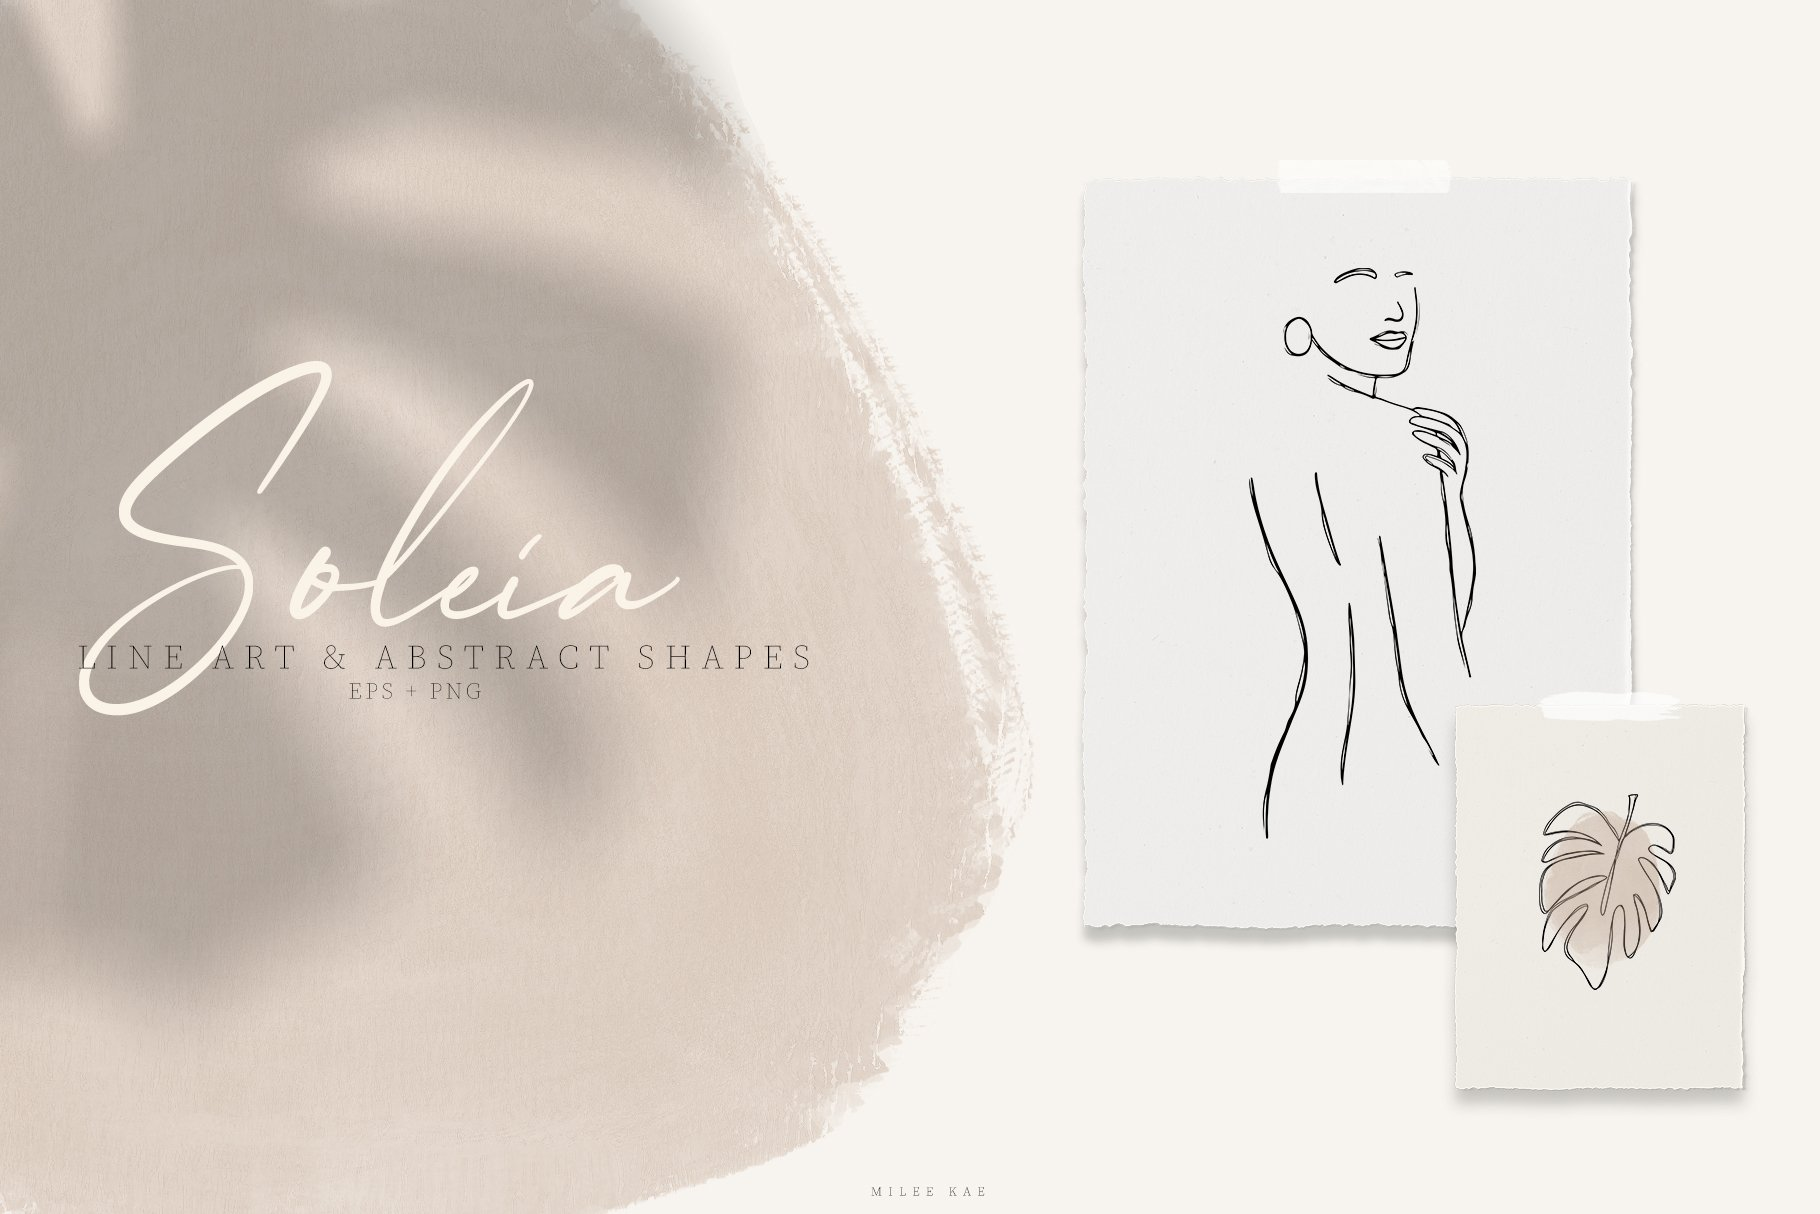 Soleia Line Art & Abstract Shapes example image 1